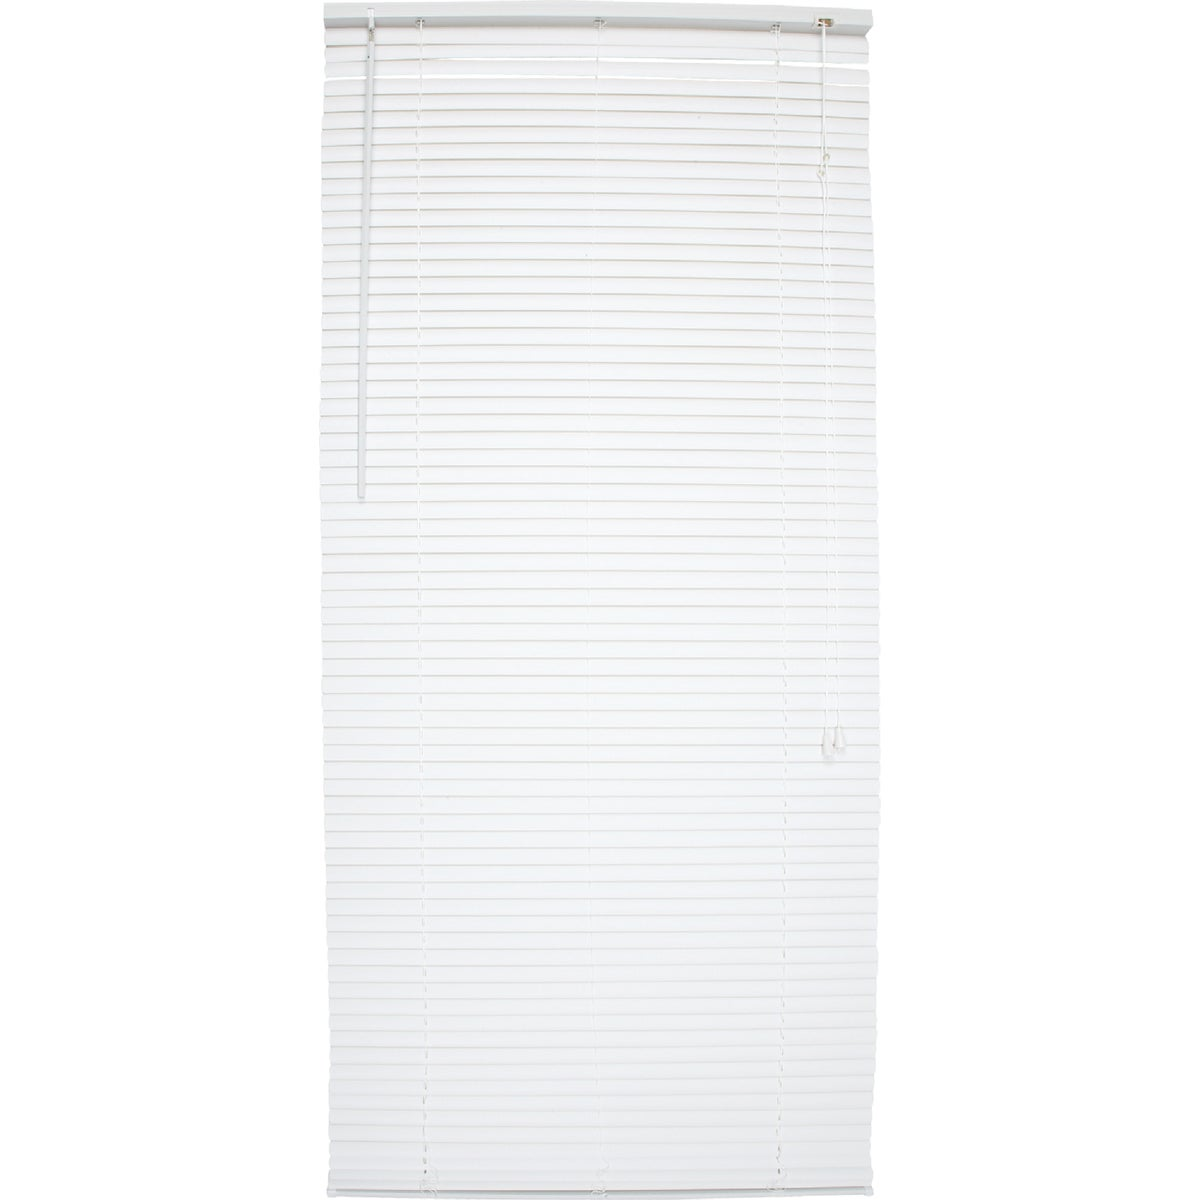 45X72 WHITE MINI BLIND - 615811 by Lotus Wind Incom